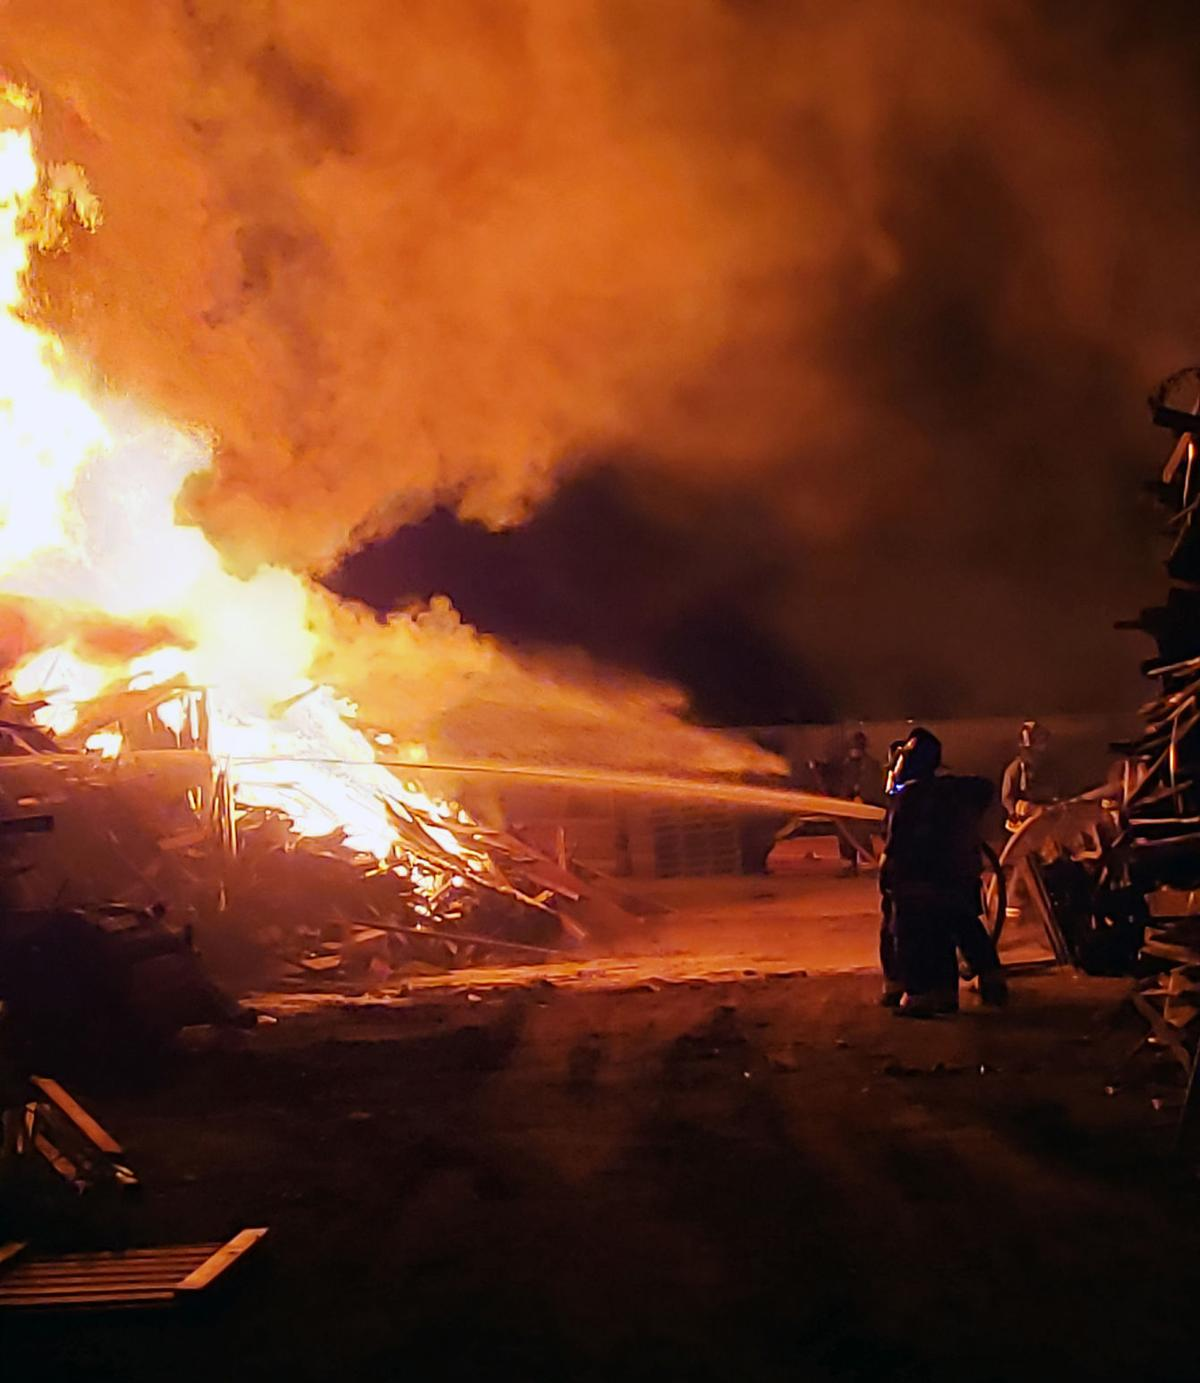 Late-night fire scorches fencing company | Tracy Press News